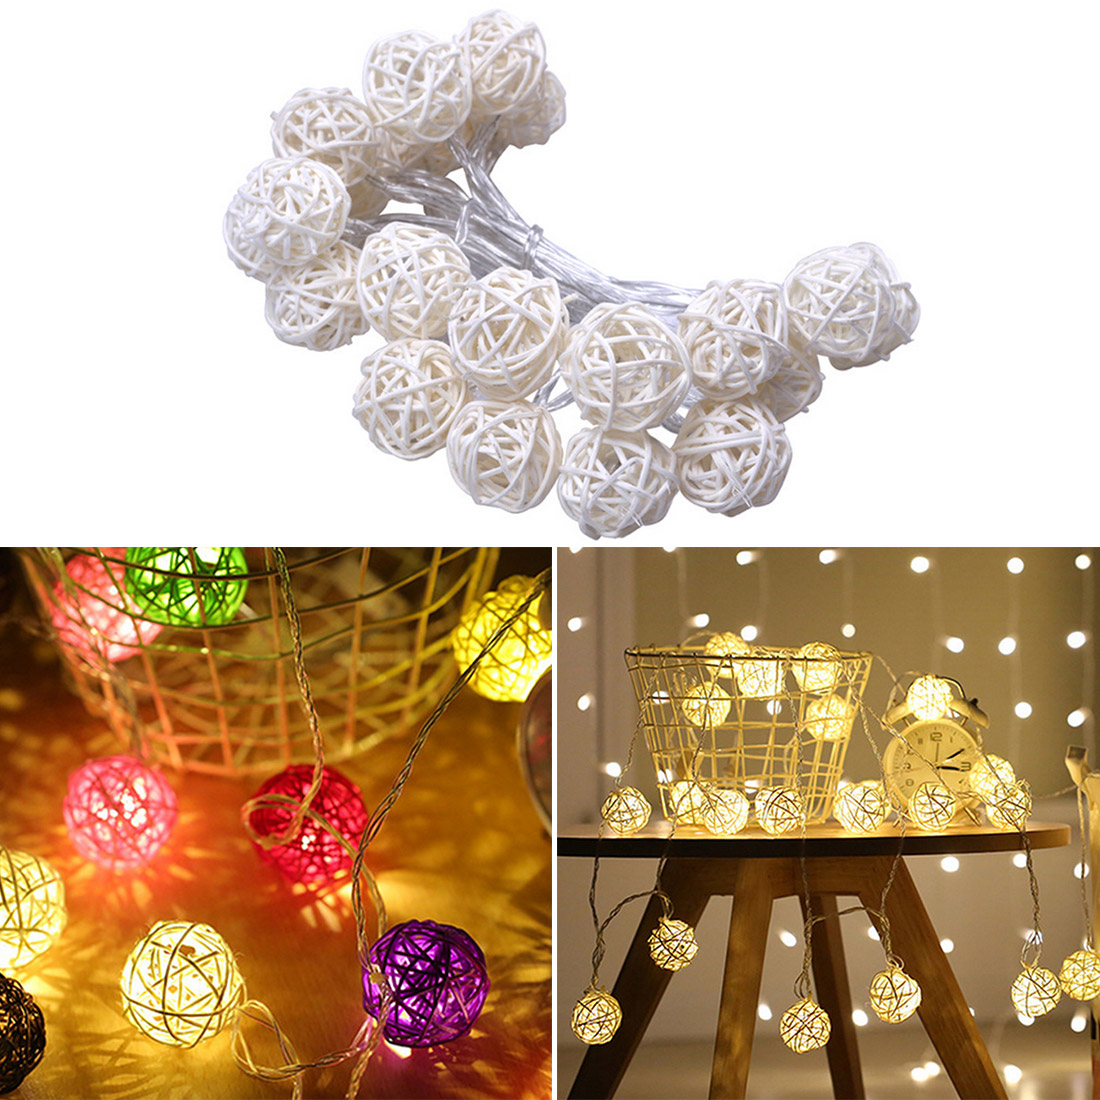 5mm Led Rattan Balls Fairy String Decorative Lights Battery Operated Christmas Outdoor Patio Garland Wedding Decoration цена